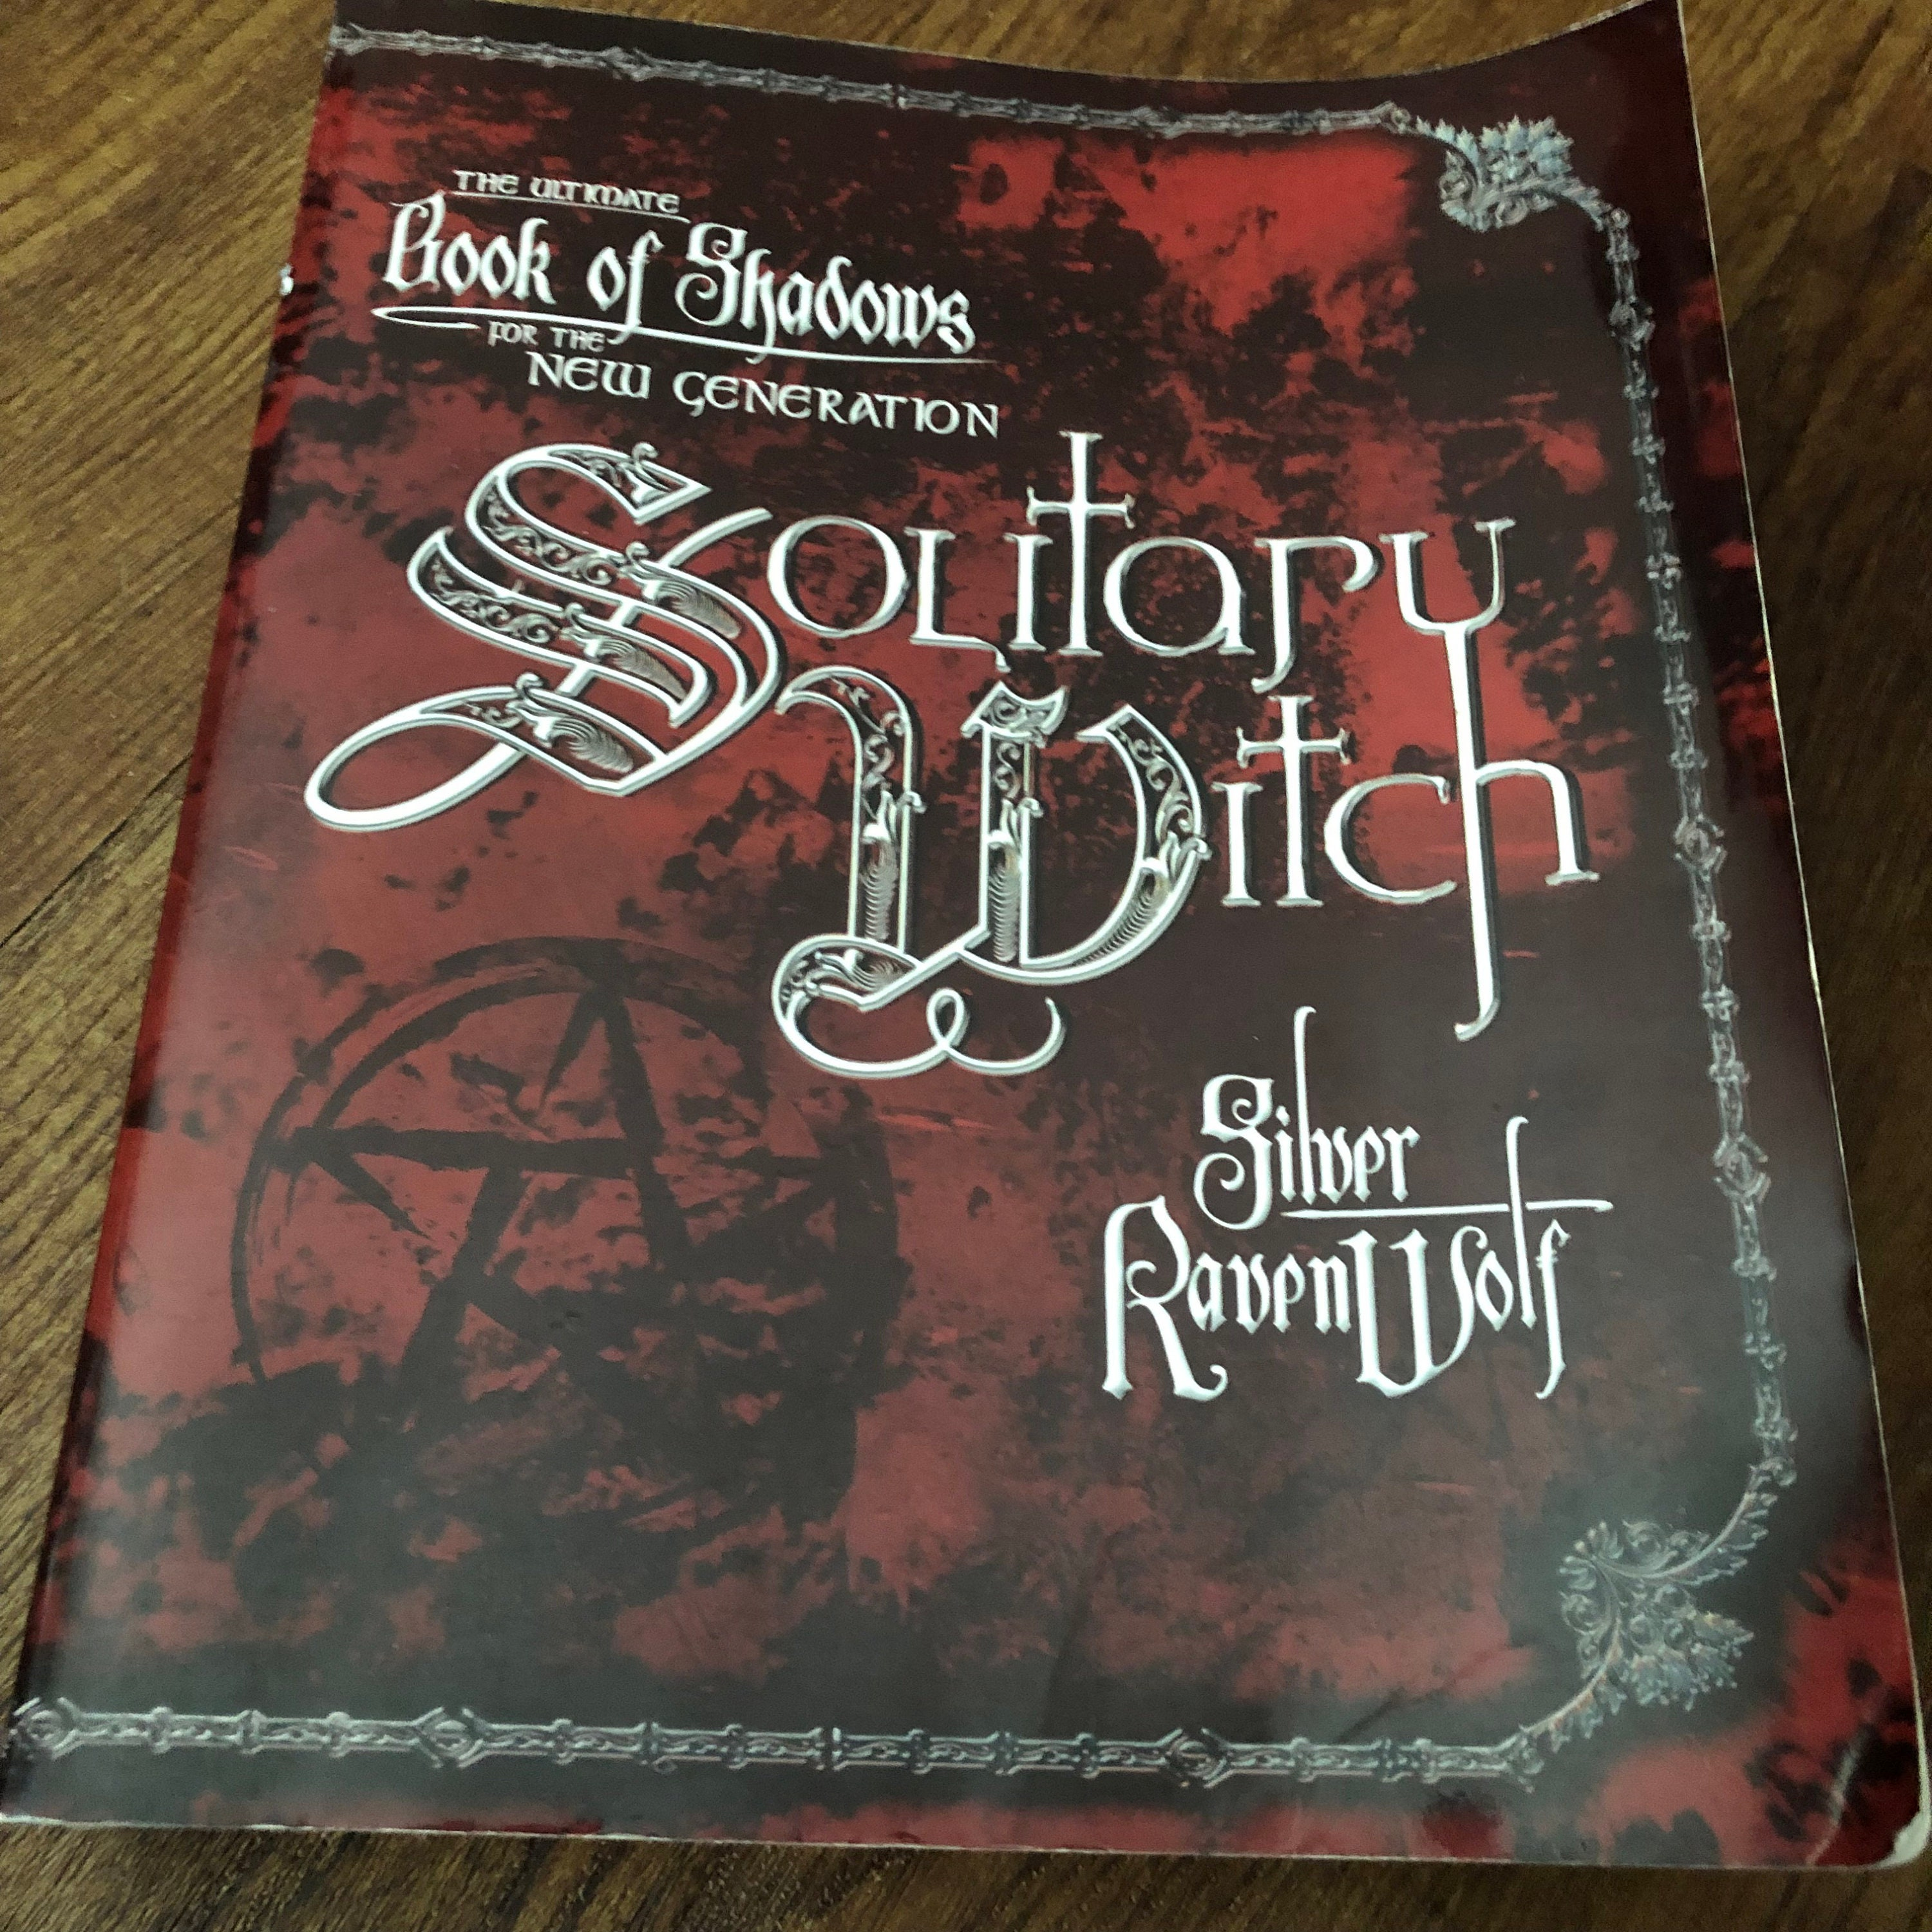 Book of Shadows for the Solitary Witch Witches Softcover